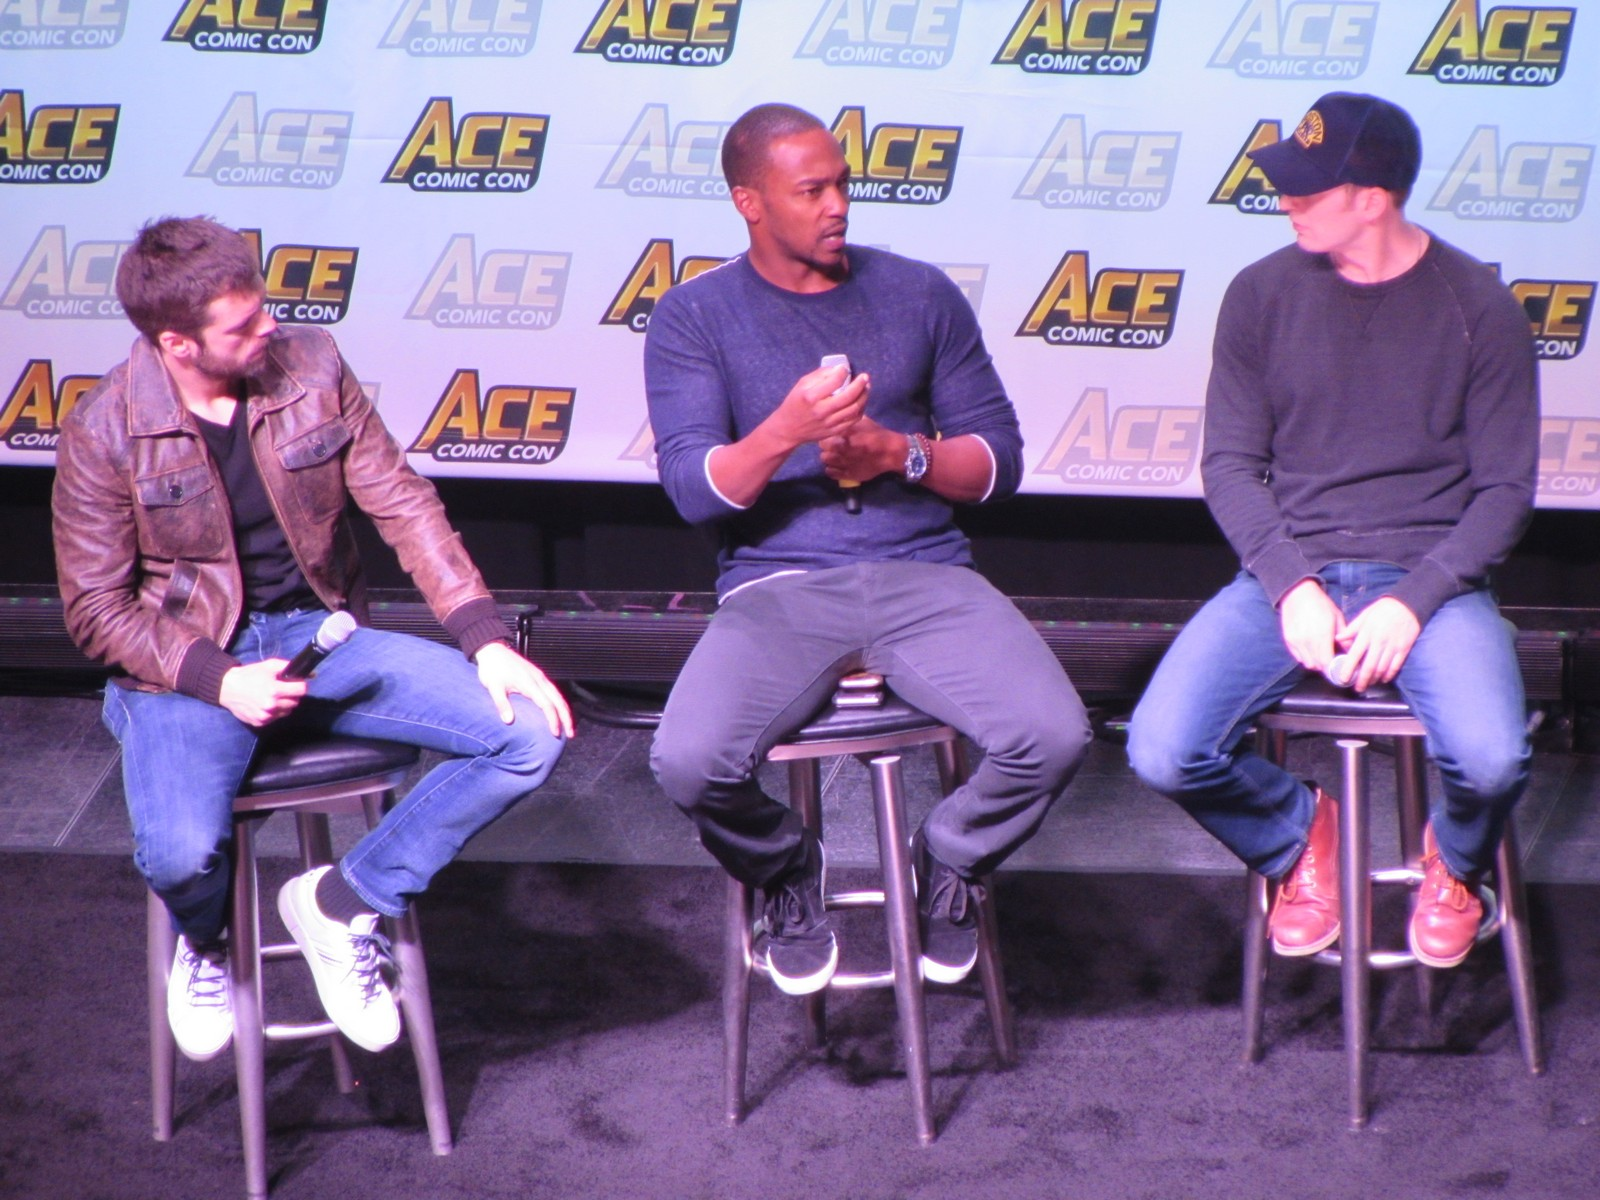 Ace Comic Con Captain America panel with Sebastian Stan, Anthony Mackie, and Chris Evans